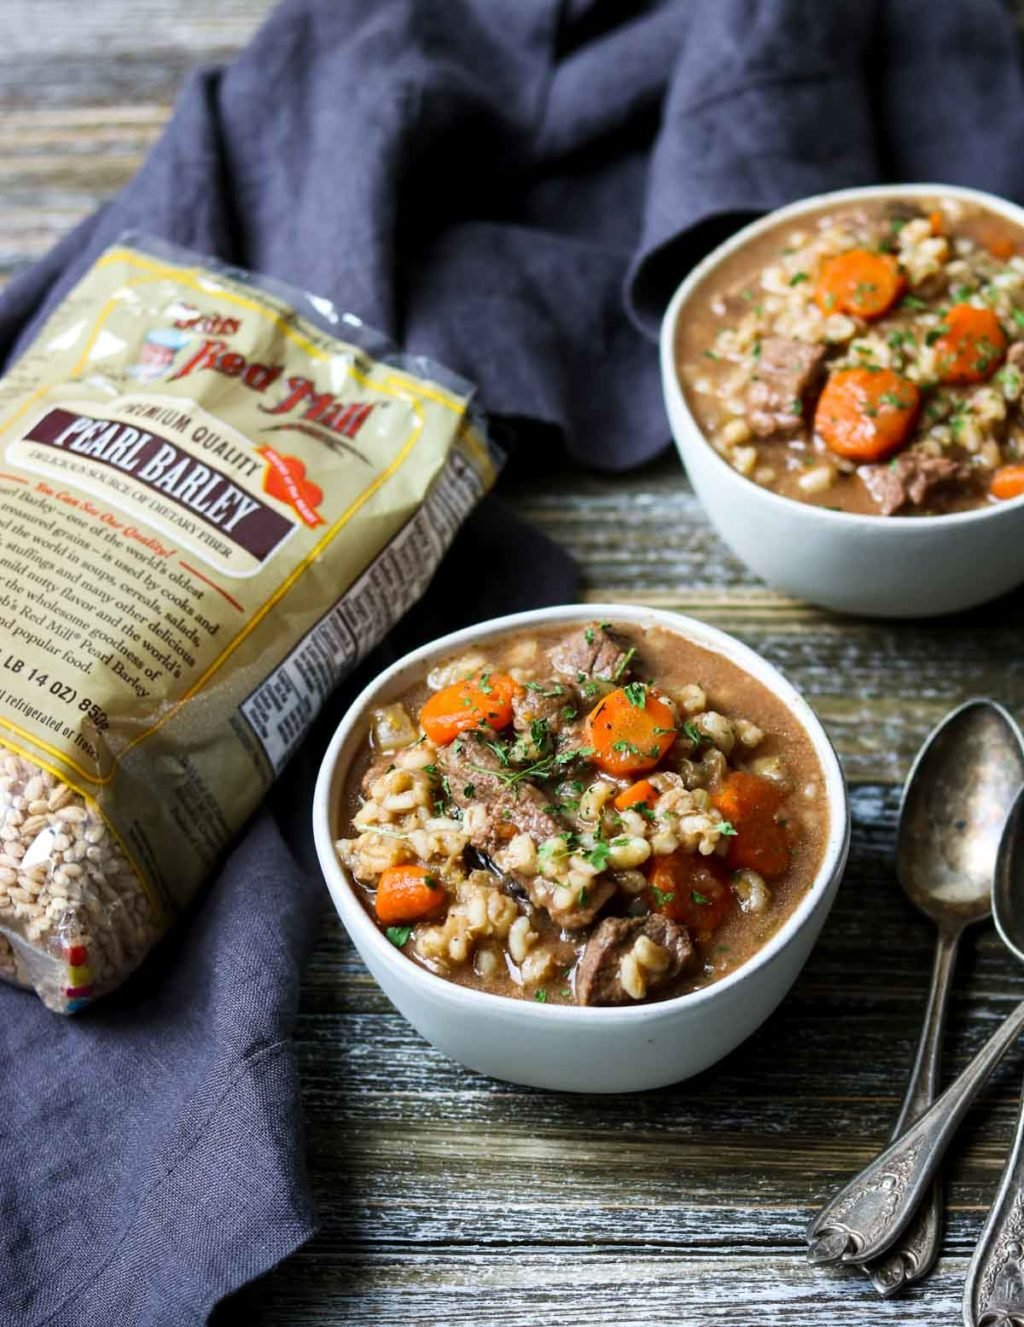 two bowls of beef and barley soup with a bag of bobs red mill pearl barley to the side